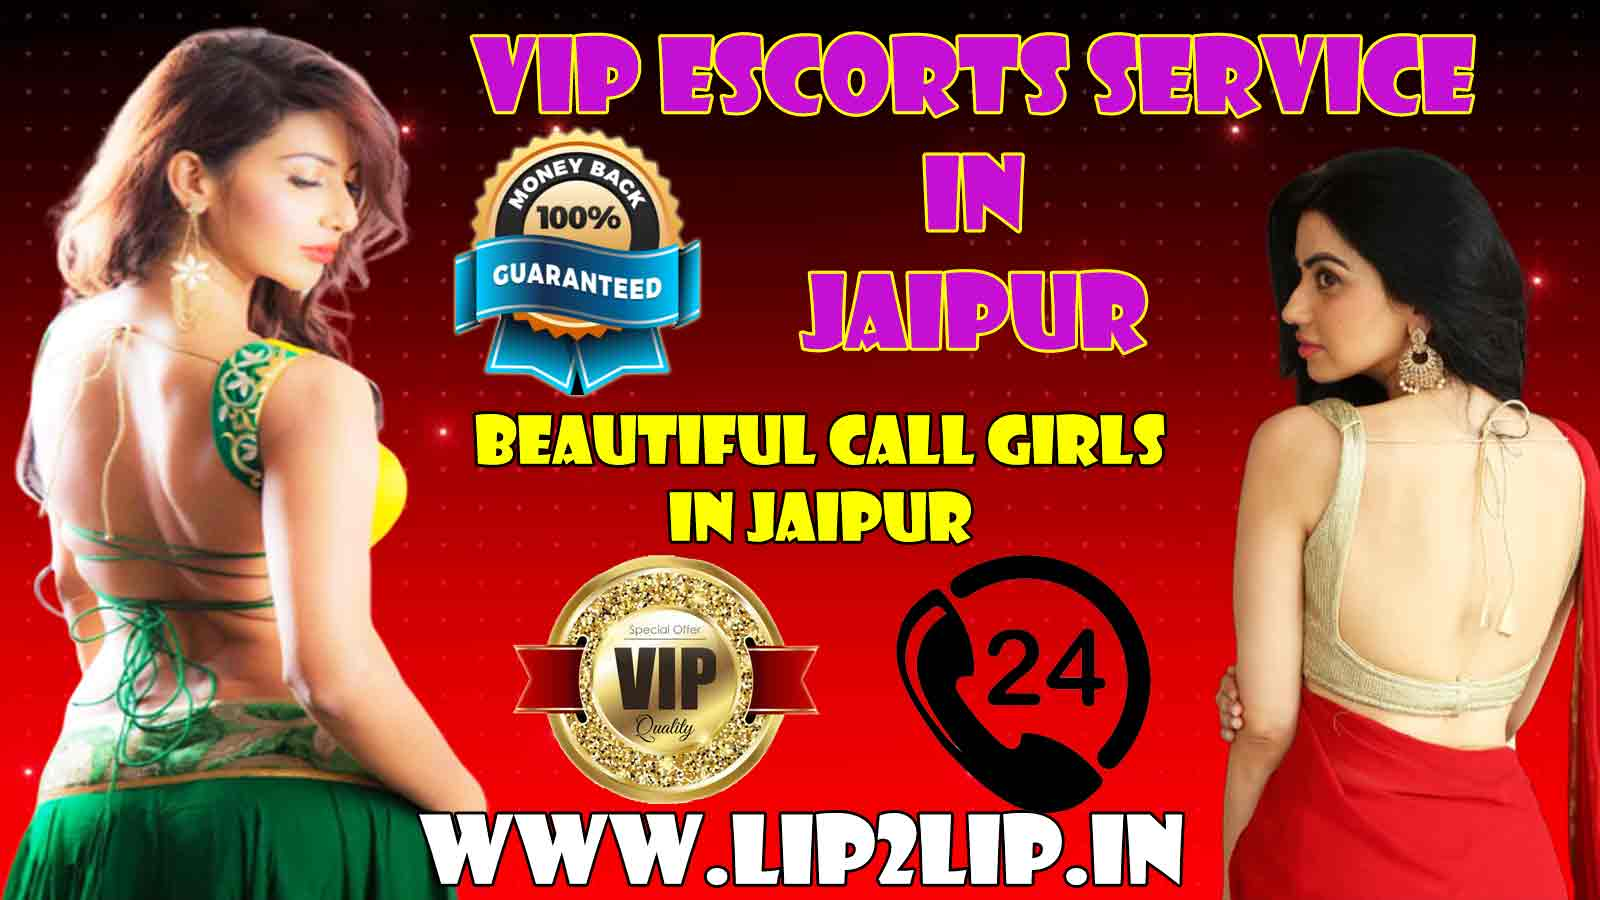 Jaipur call girl service